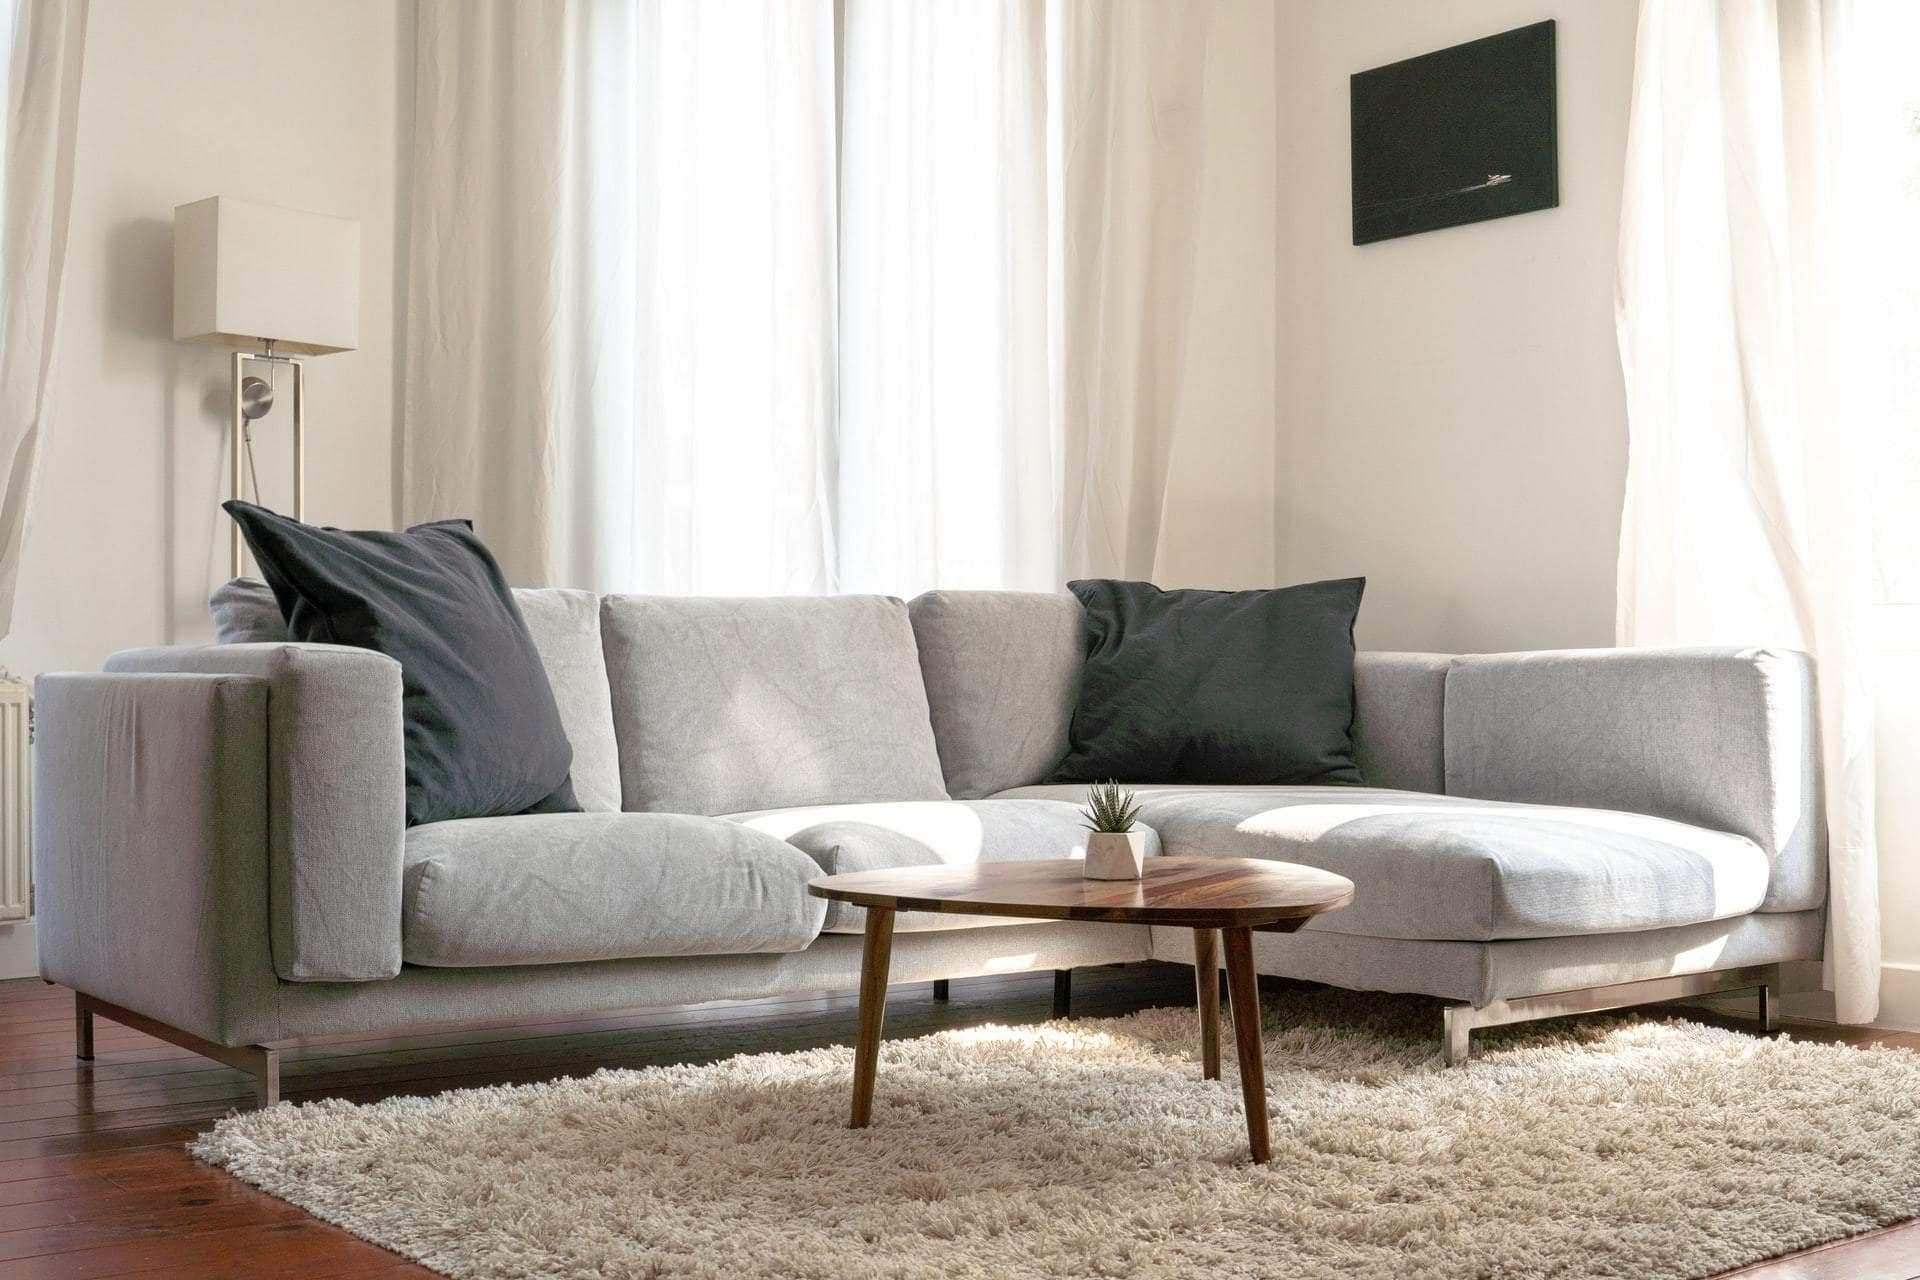 Dark Grey Couch Cushions For a Light Grey Couch